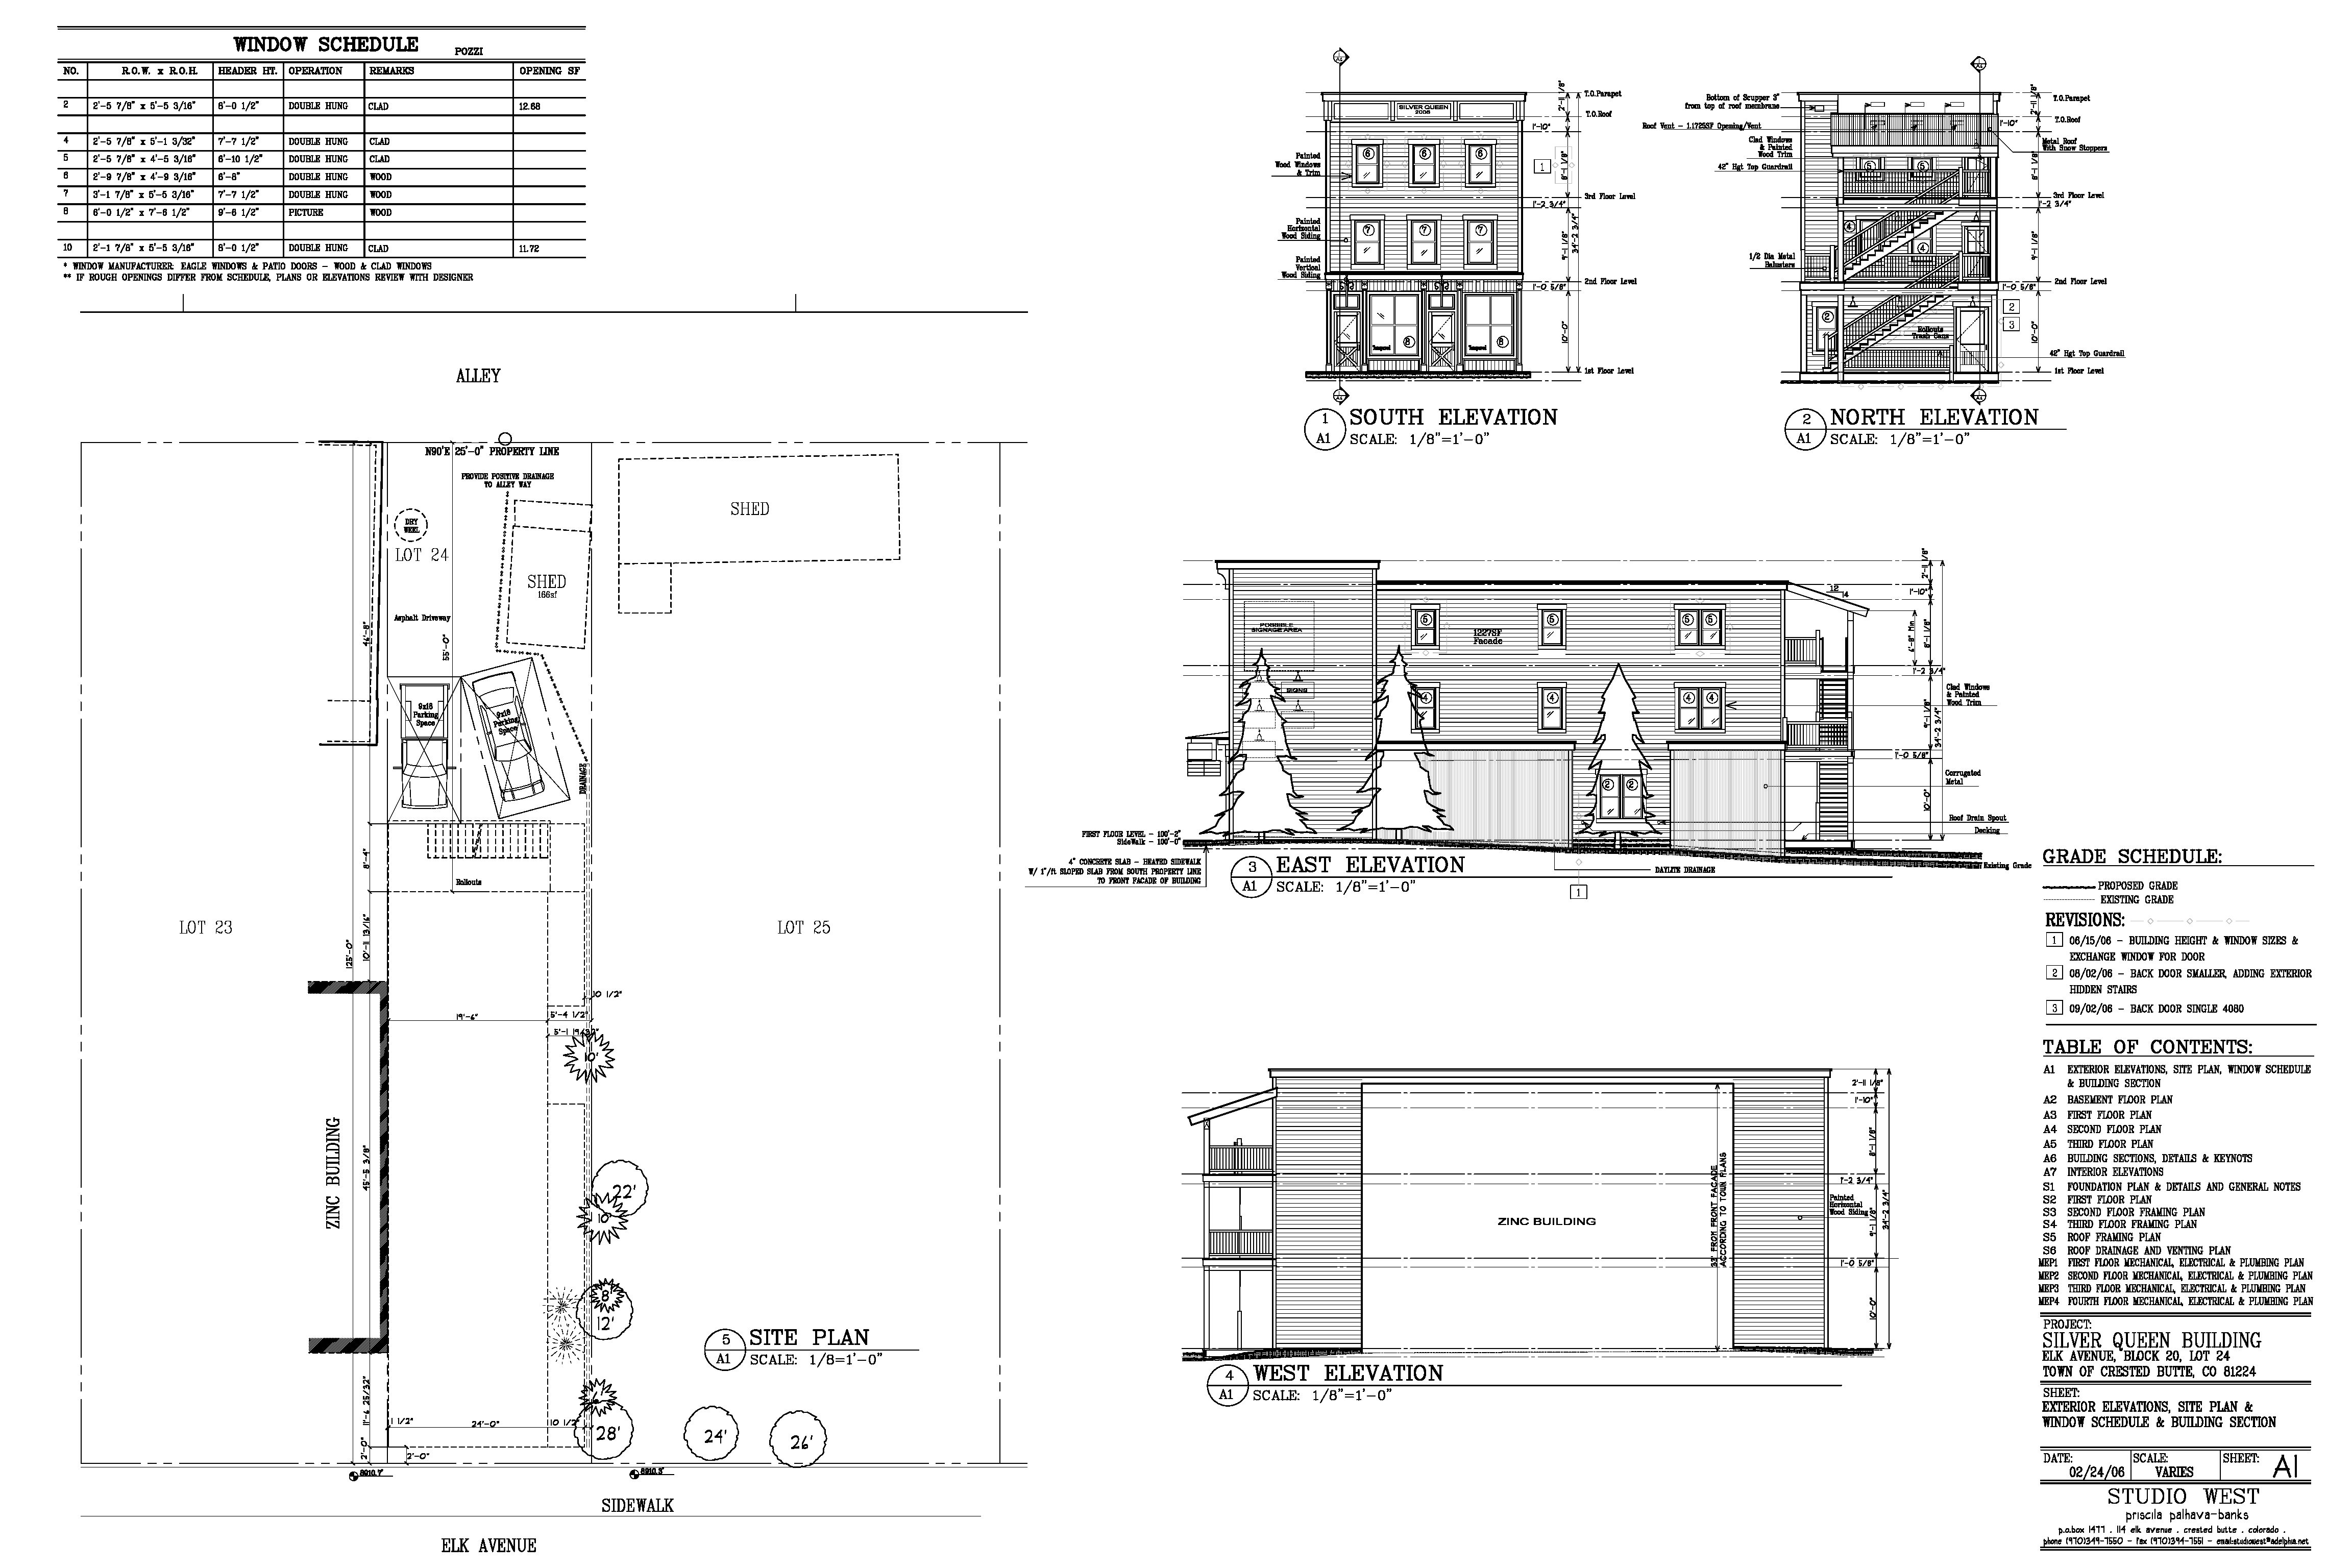 construction drawings, Studio West